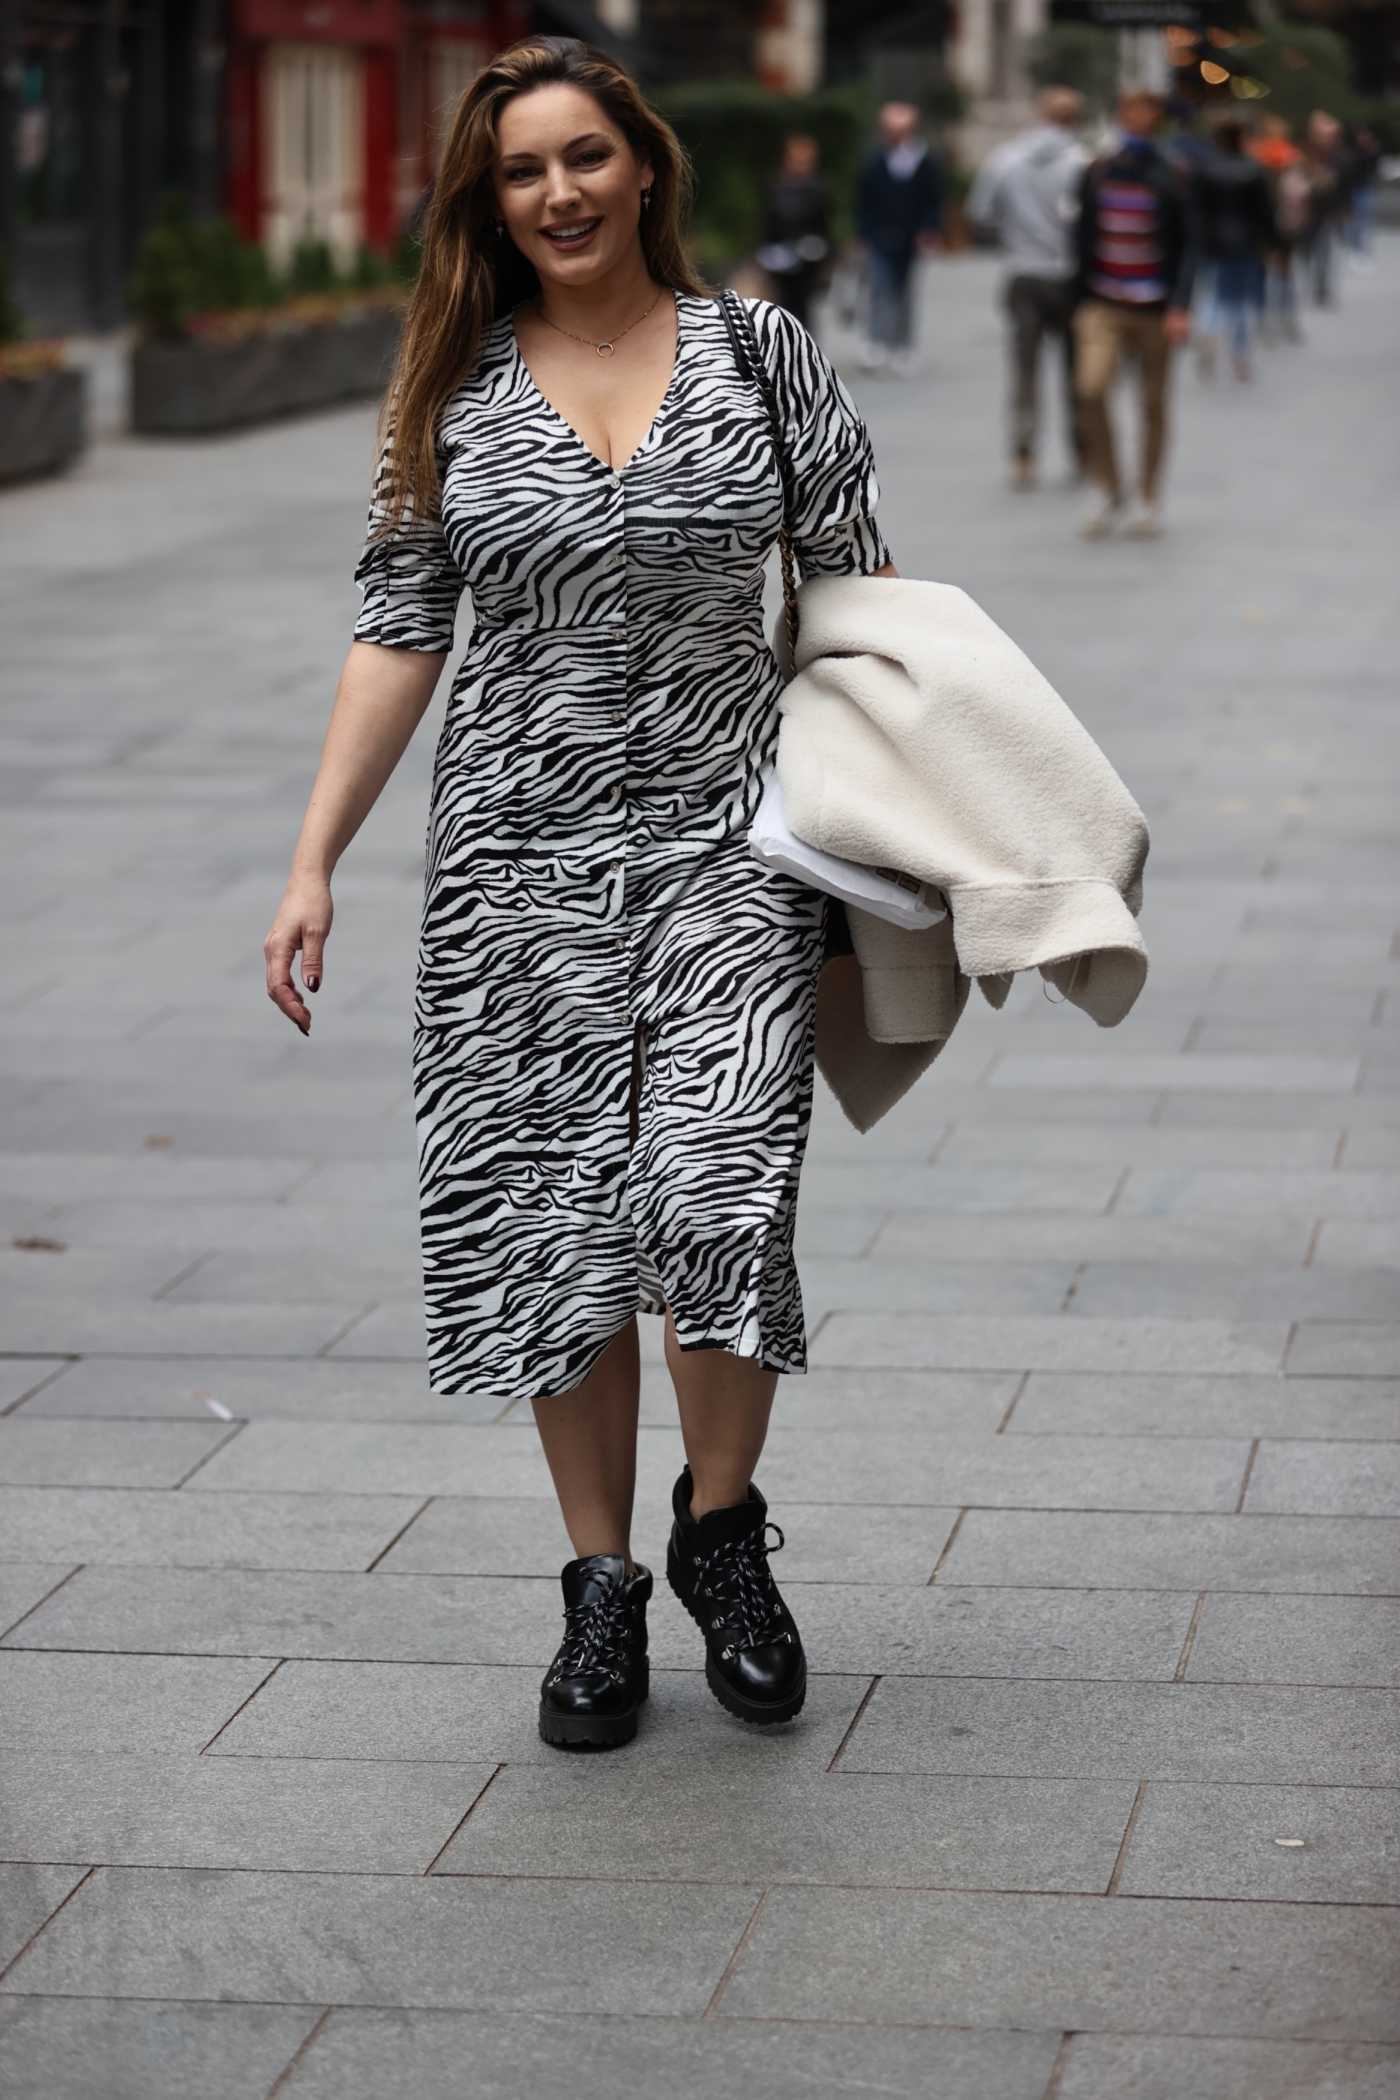 Kelly Brook in a Zebra Print Dress Arrives at the Heart Radio in London 10/23/2020